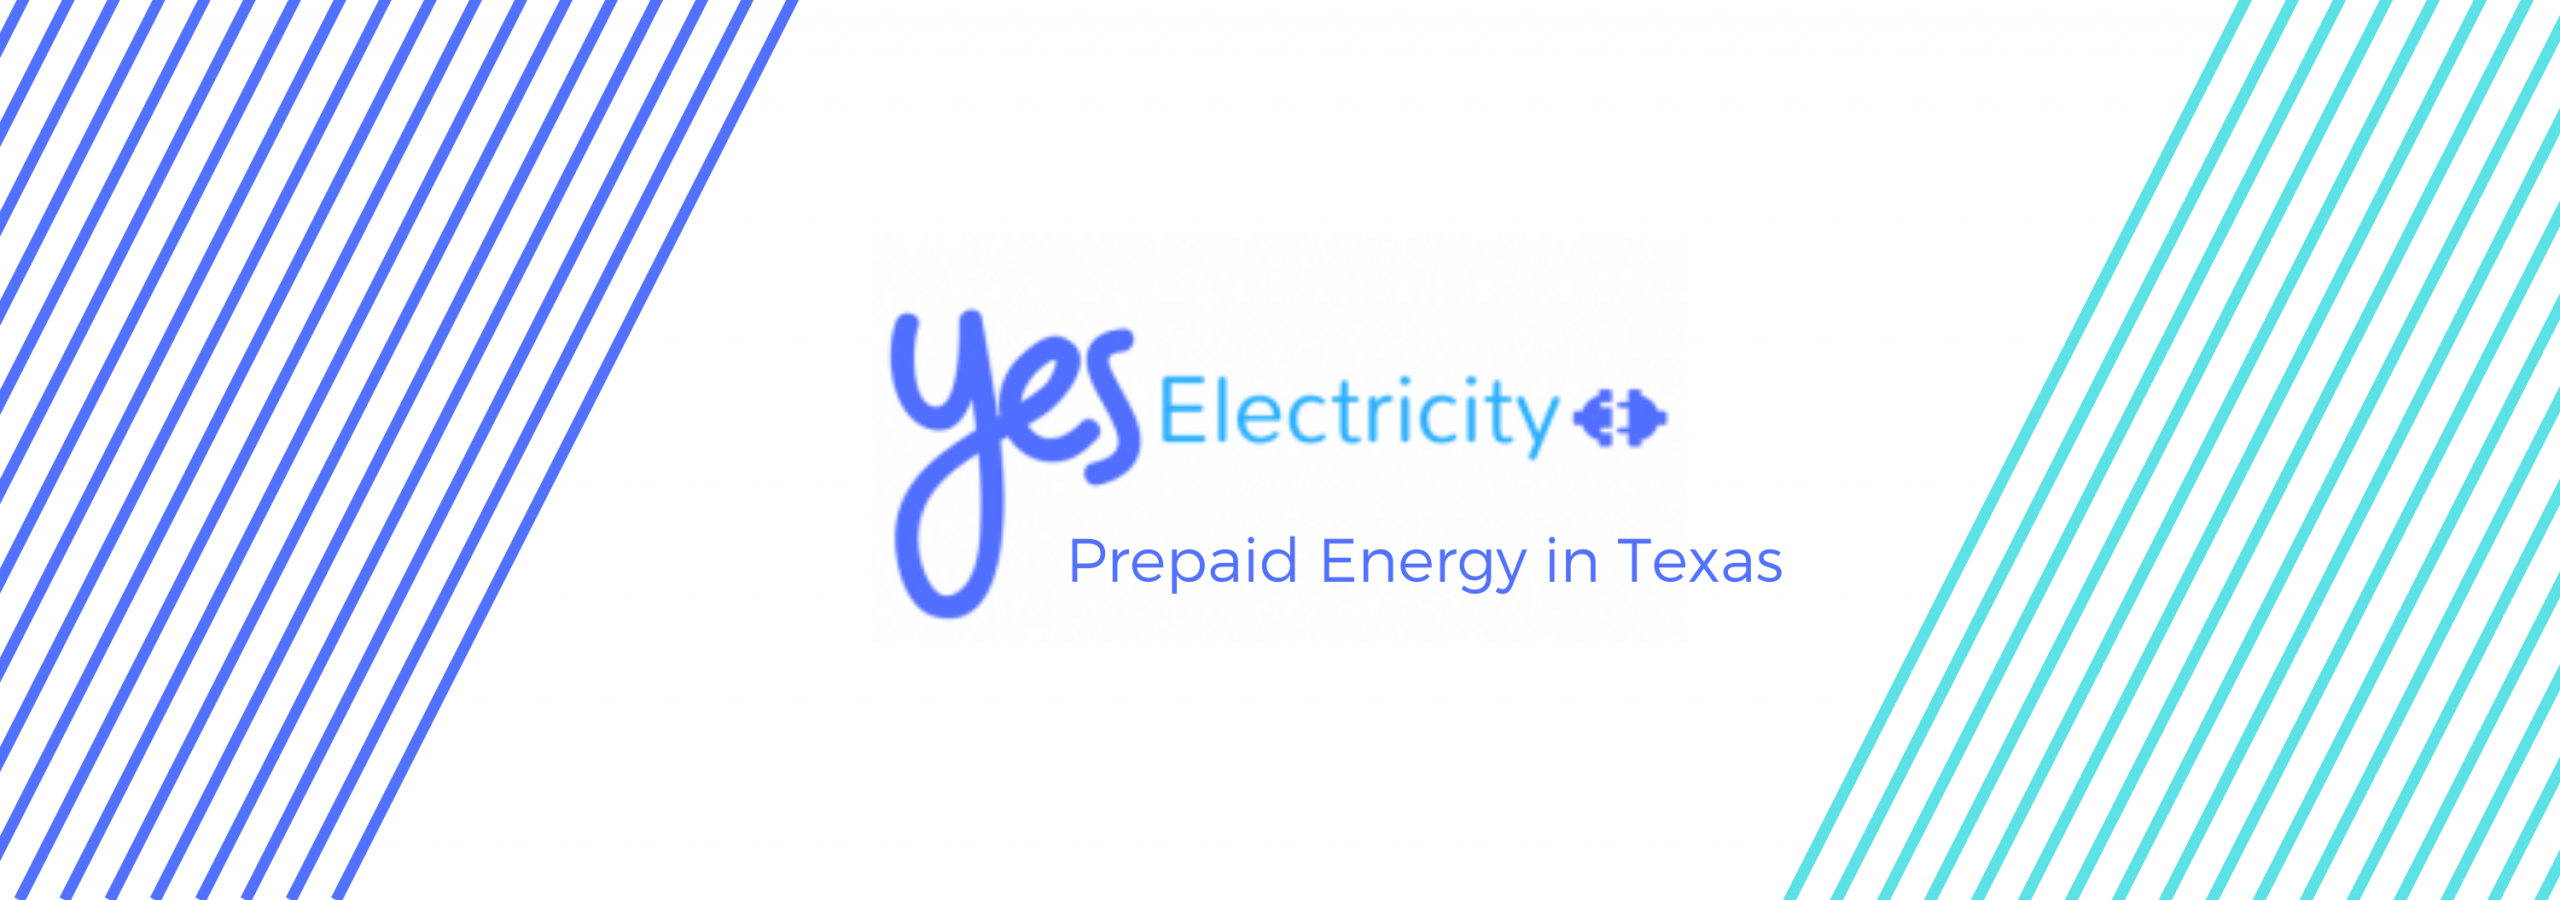 Yes Electricity Company - A Texas Energy Provider